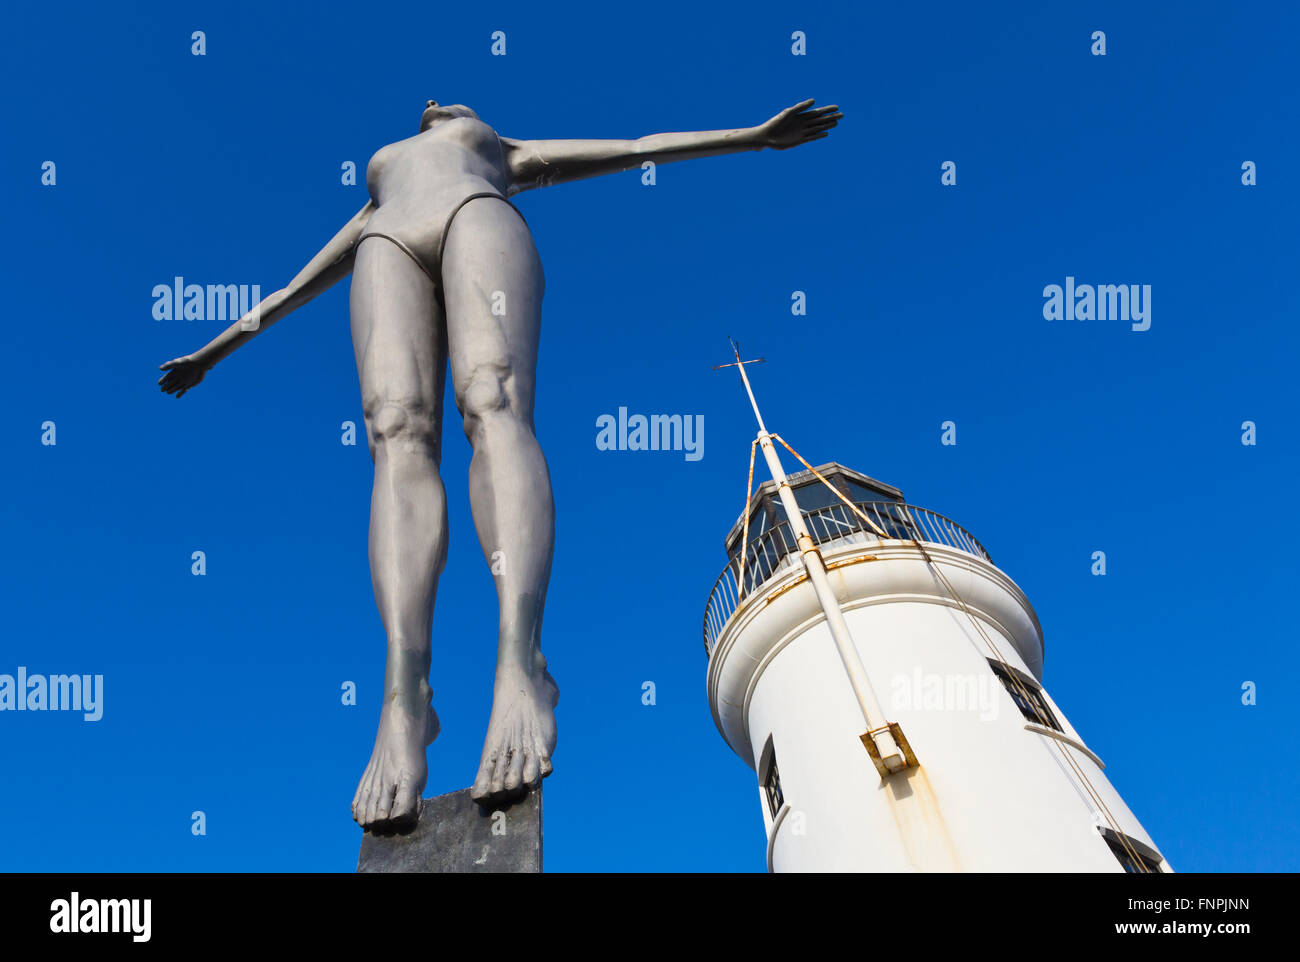 Scarborough lighthouse and diving belle sculpture, UK - Stock Image